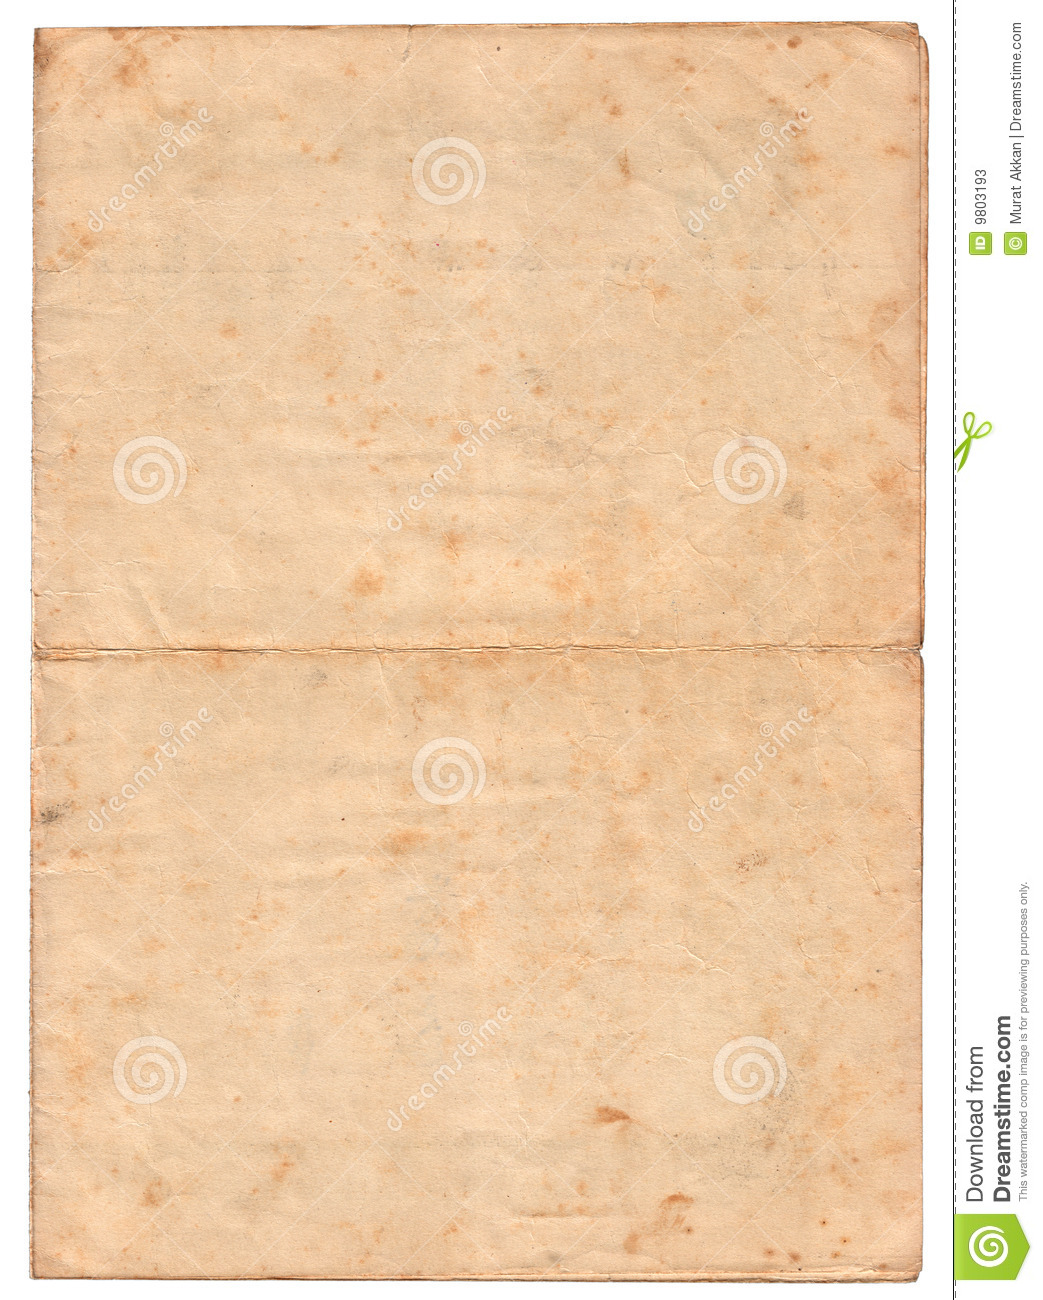 https://thumbs.dreamstime.com/z/original-paper-xxlarge-9803193.jpg